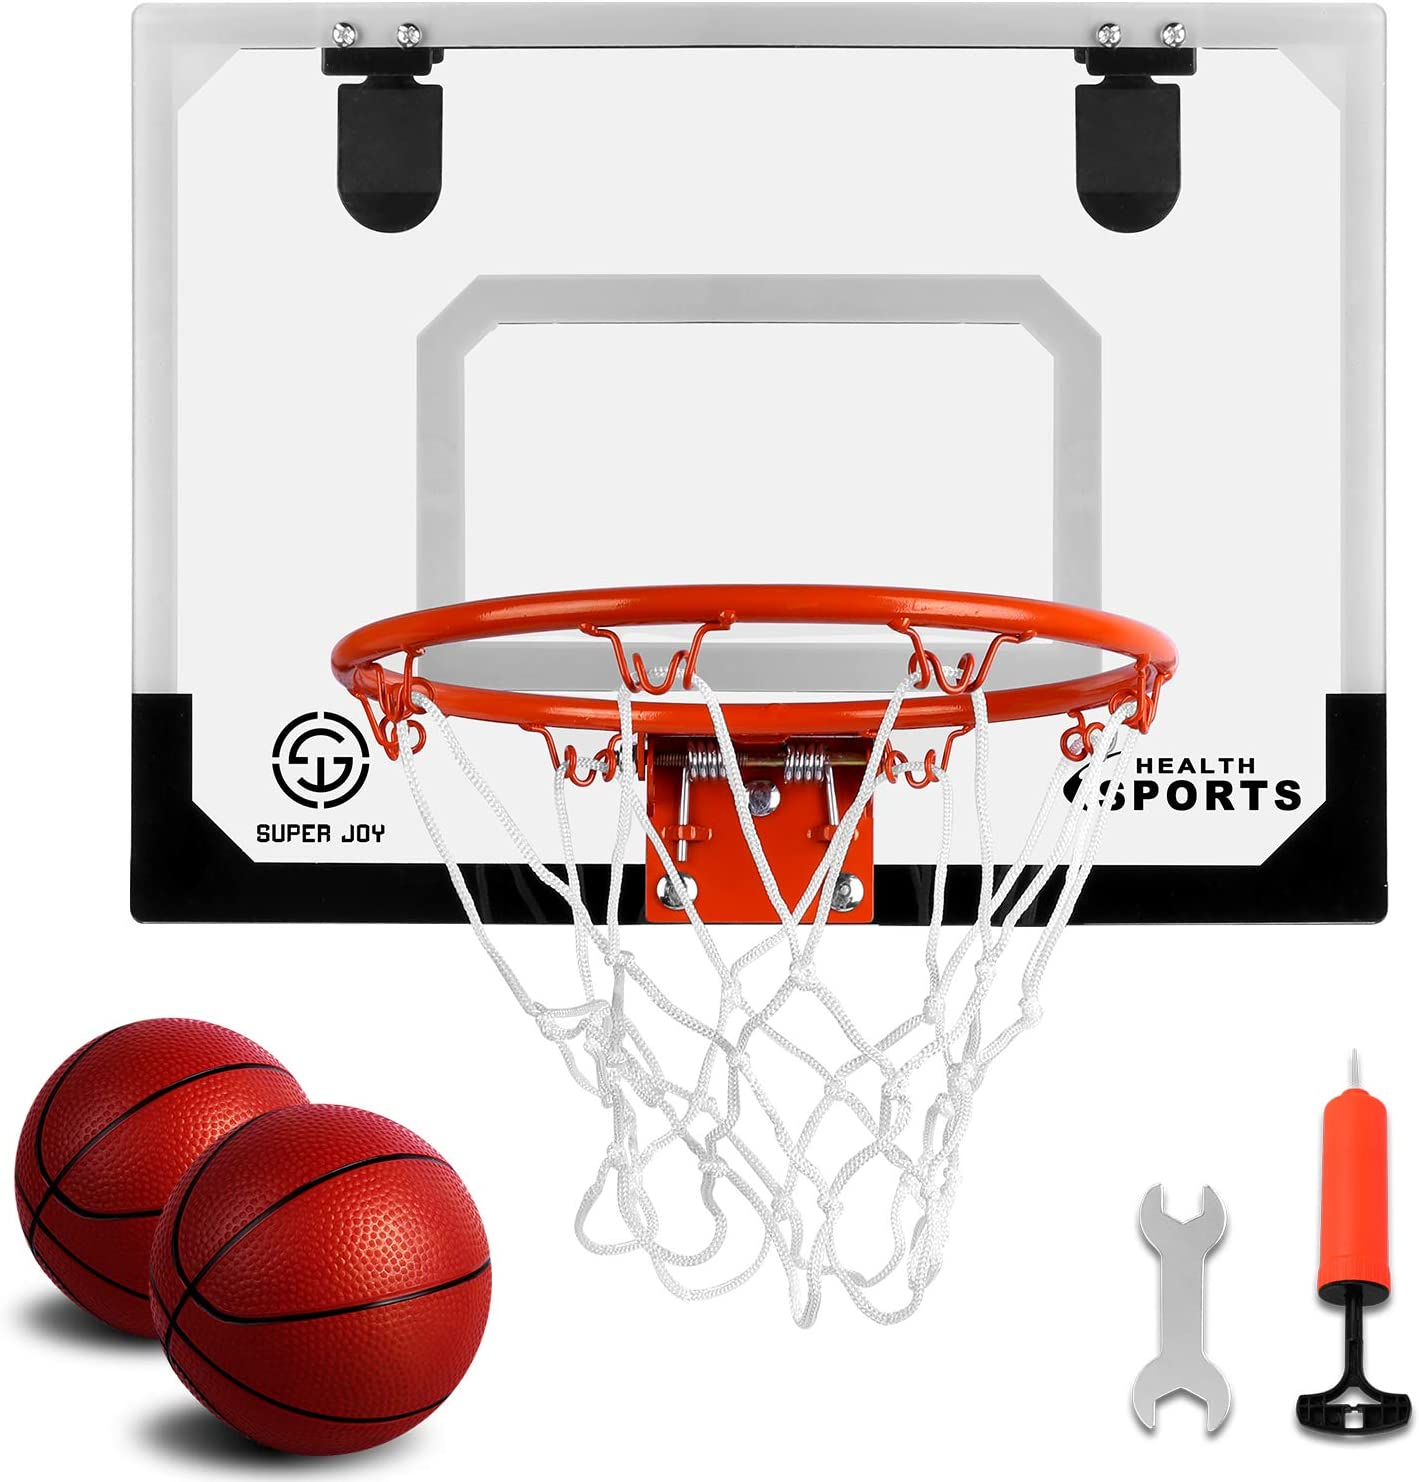 Amazon Com Super Joy Pro Indoor Mini Basketball Hoop Over The Door Wall Mounted Basketball Hoop Set With Complete Accessories Basketball Toy For Kids Adults Sports Outdoors